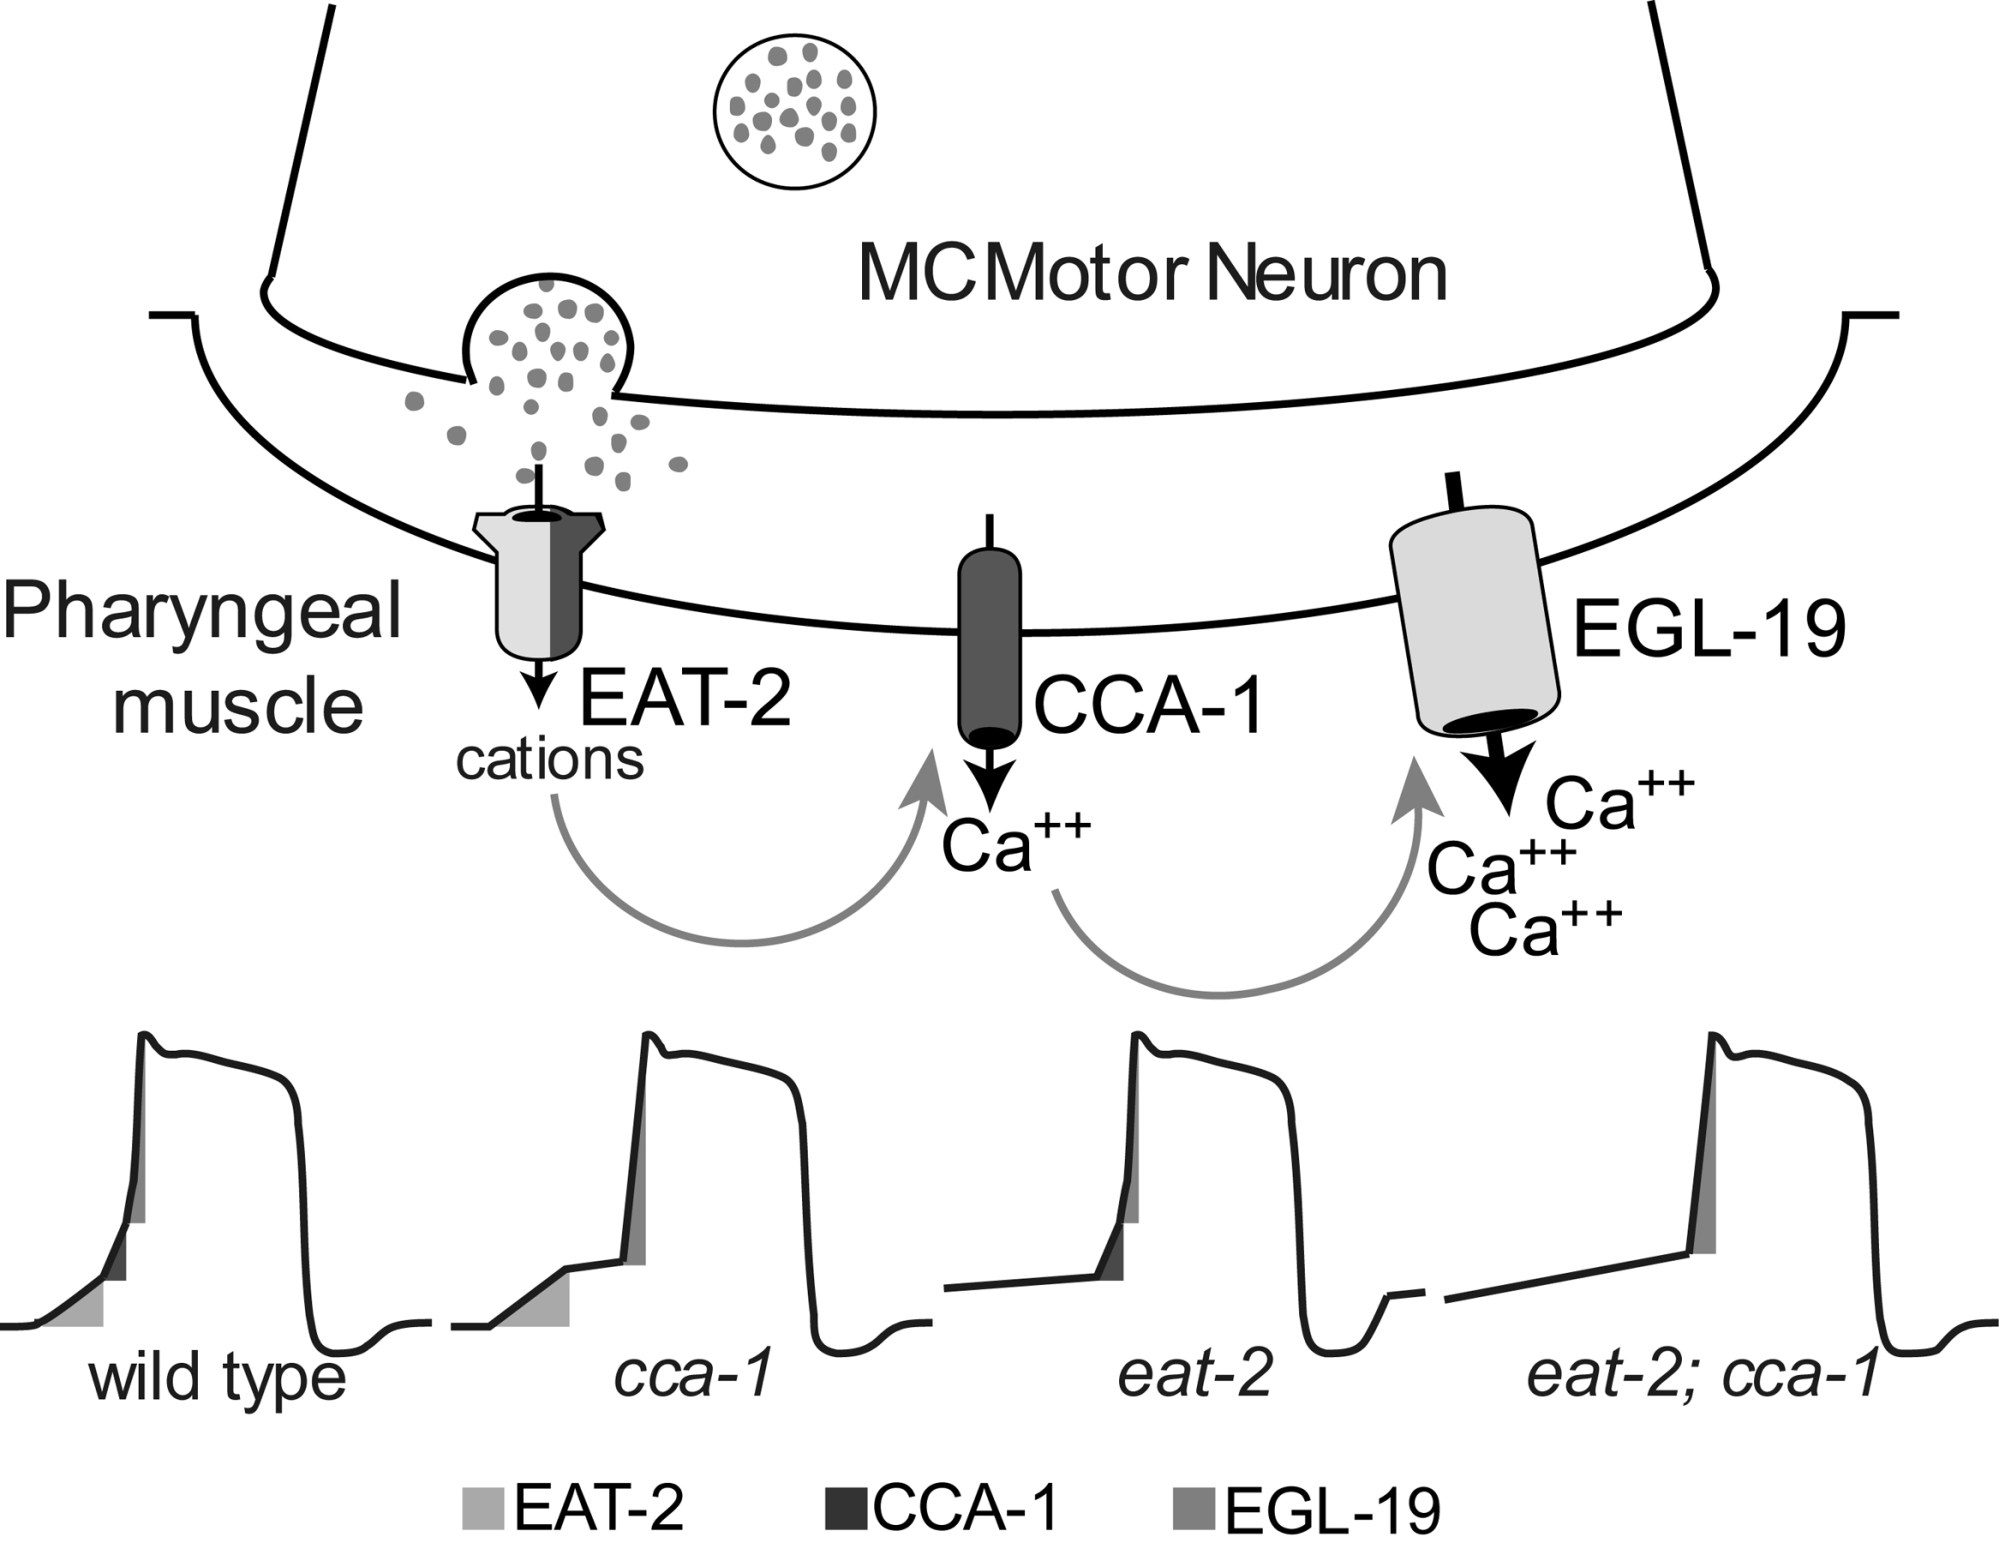 hight resolution of schematic showing how eat 2 cca 1 and egl 19 cooperate to produce the upstroke of the pharyngeal action potential reproduced with permission